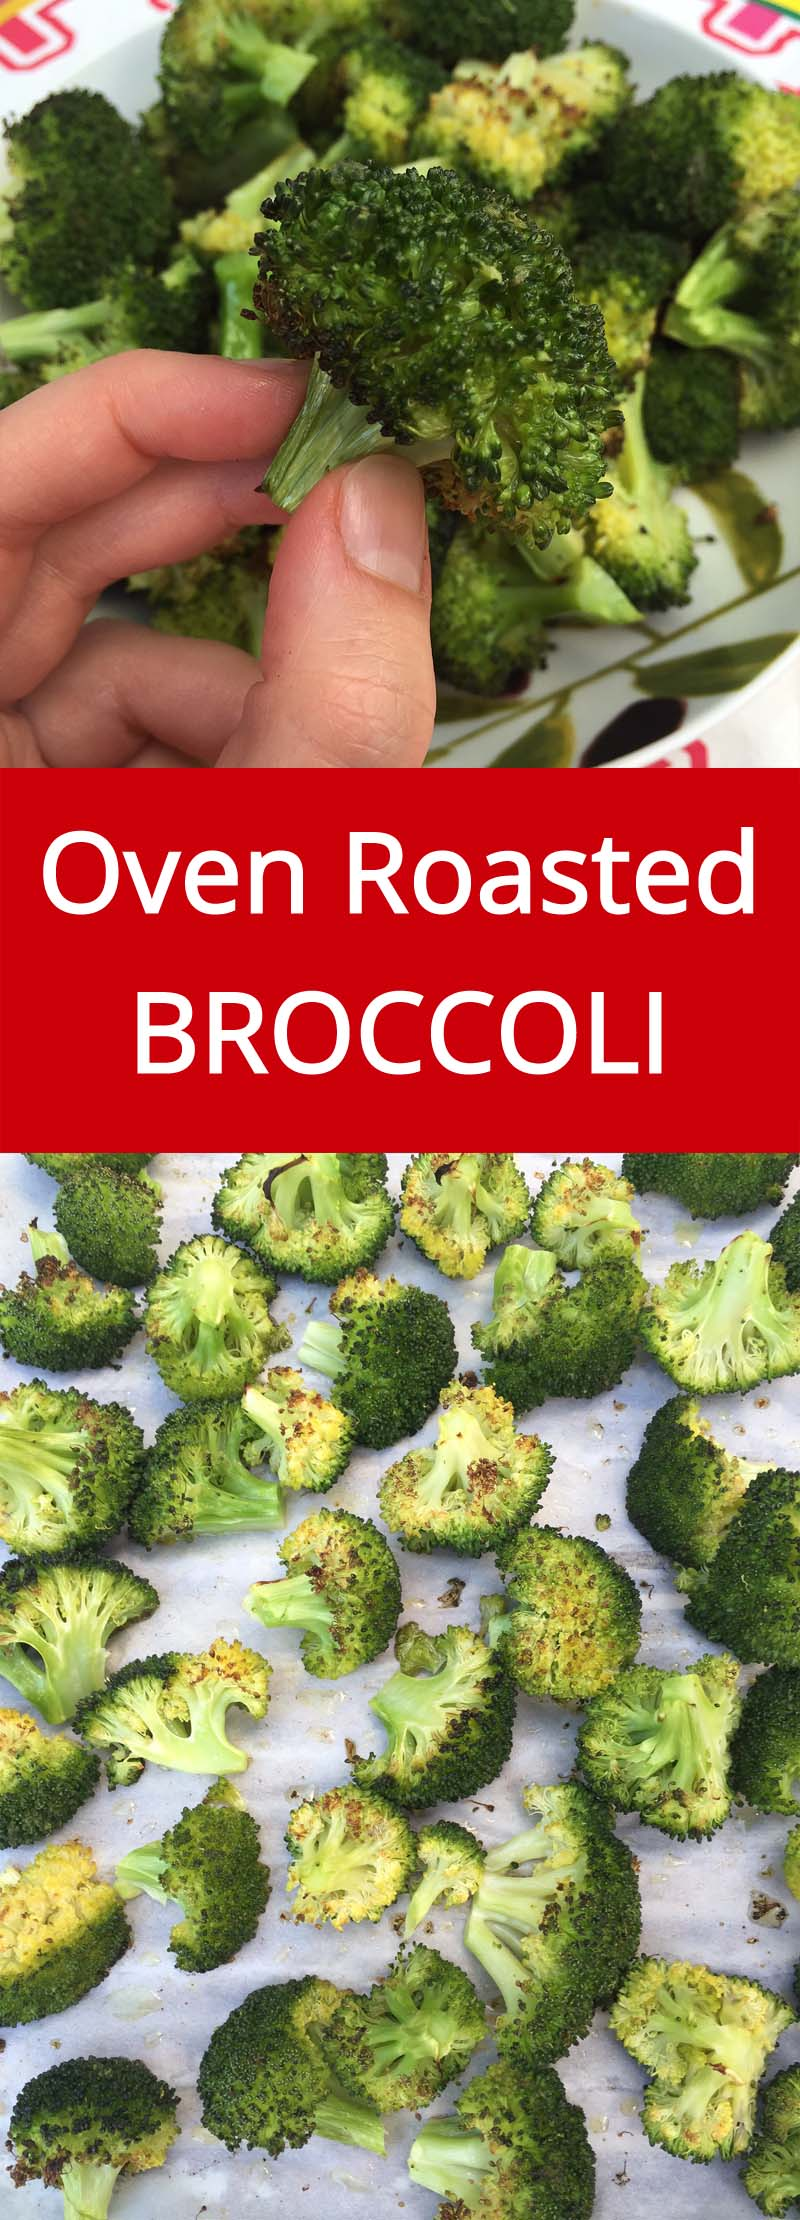 Roasted Broccoli is my favorite way of eating broccoli ever! So yummy and healthy! Even broccoli haters will gobble it up!